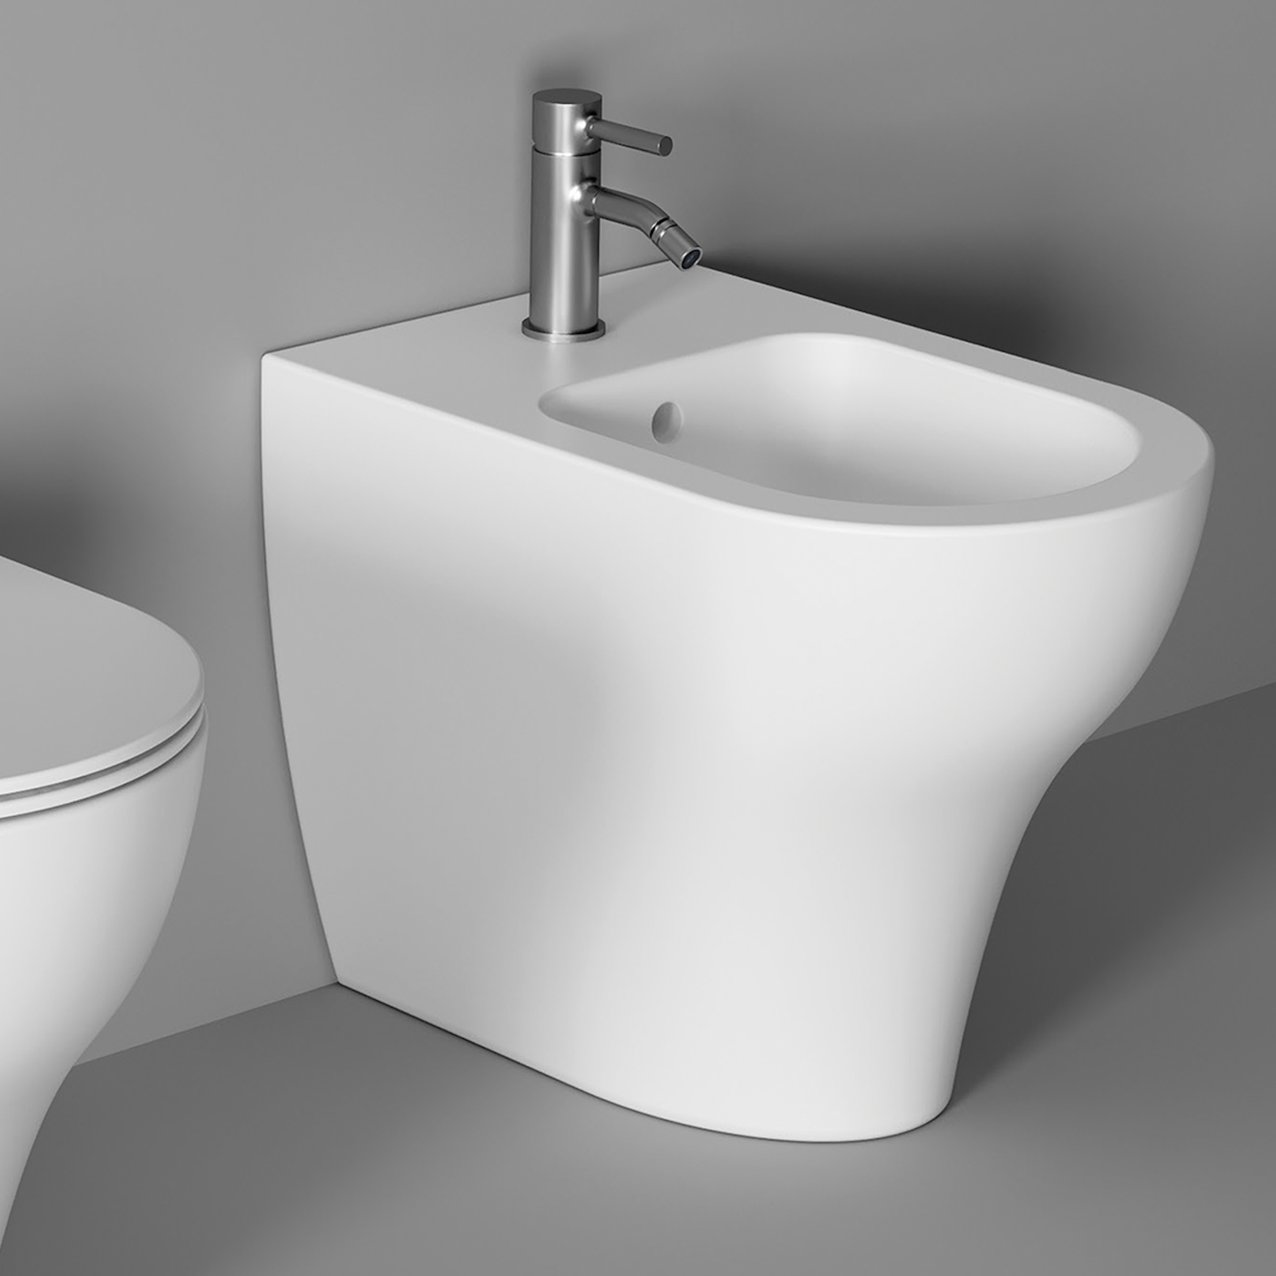 Bidet UNICA back to wall